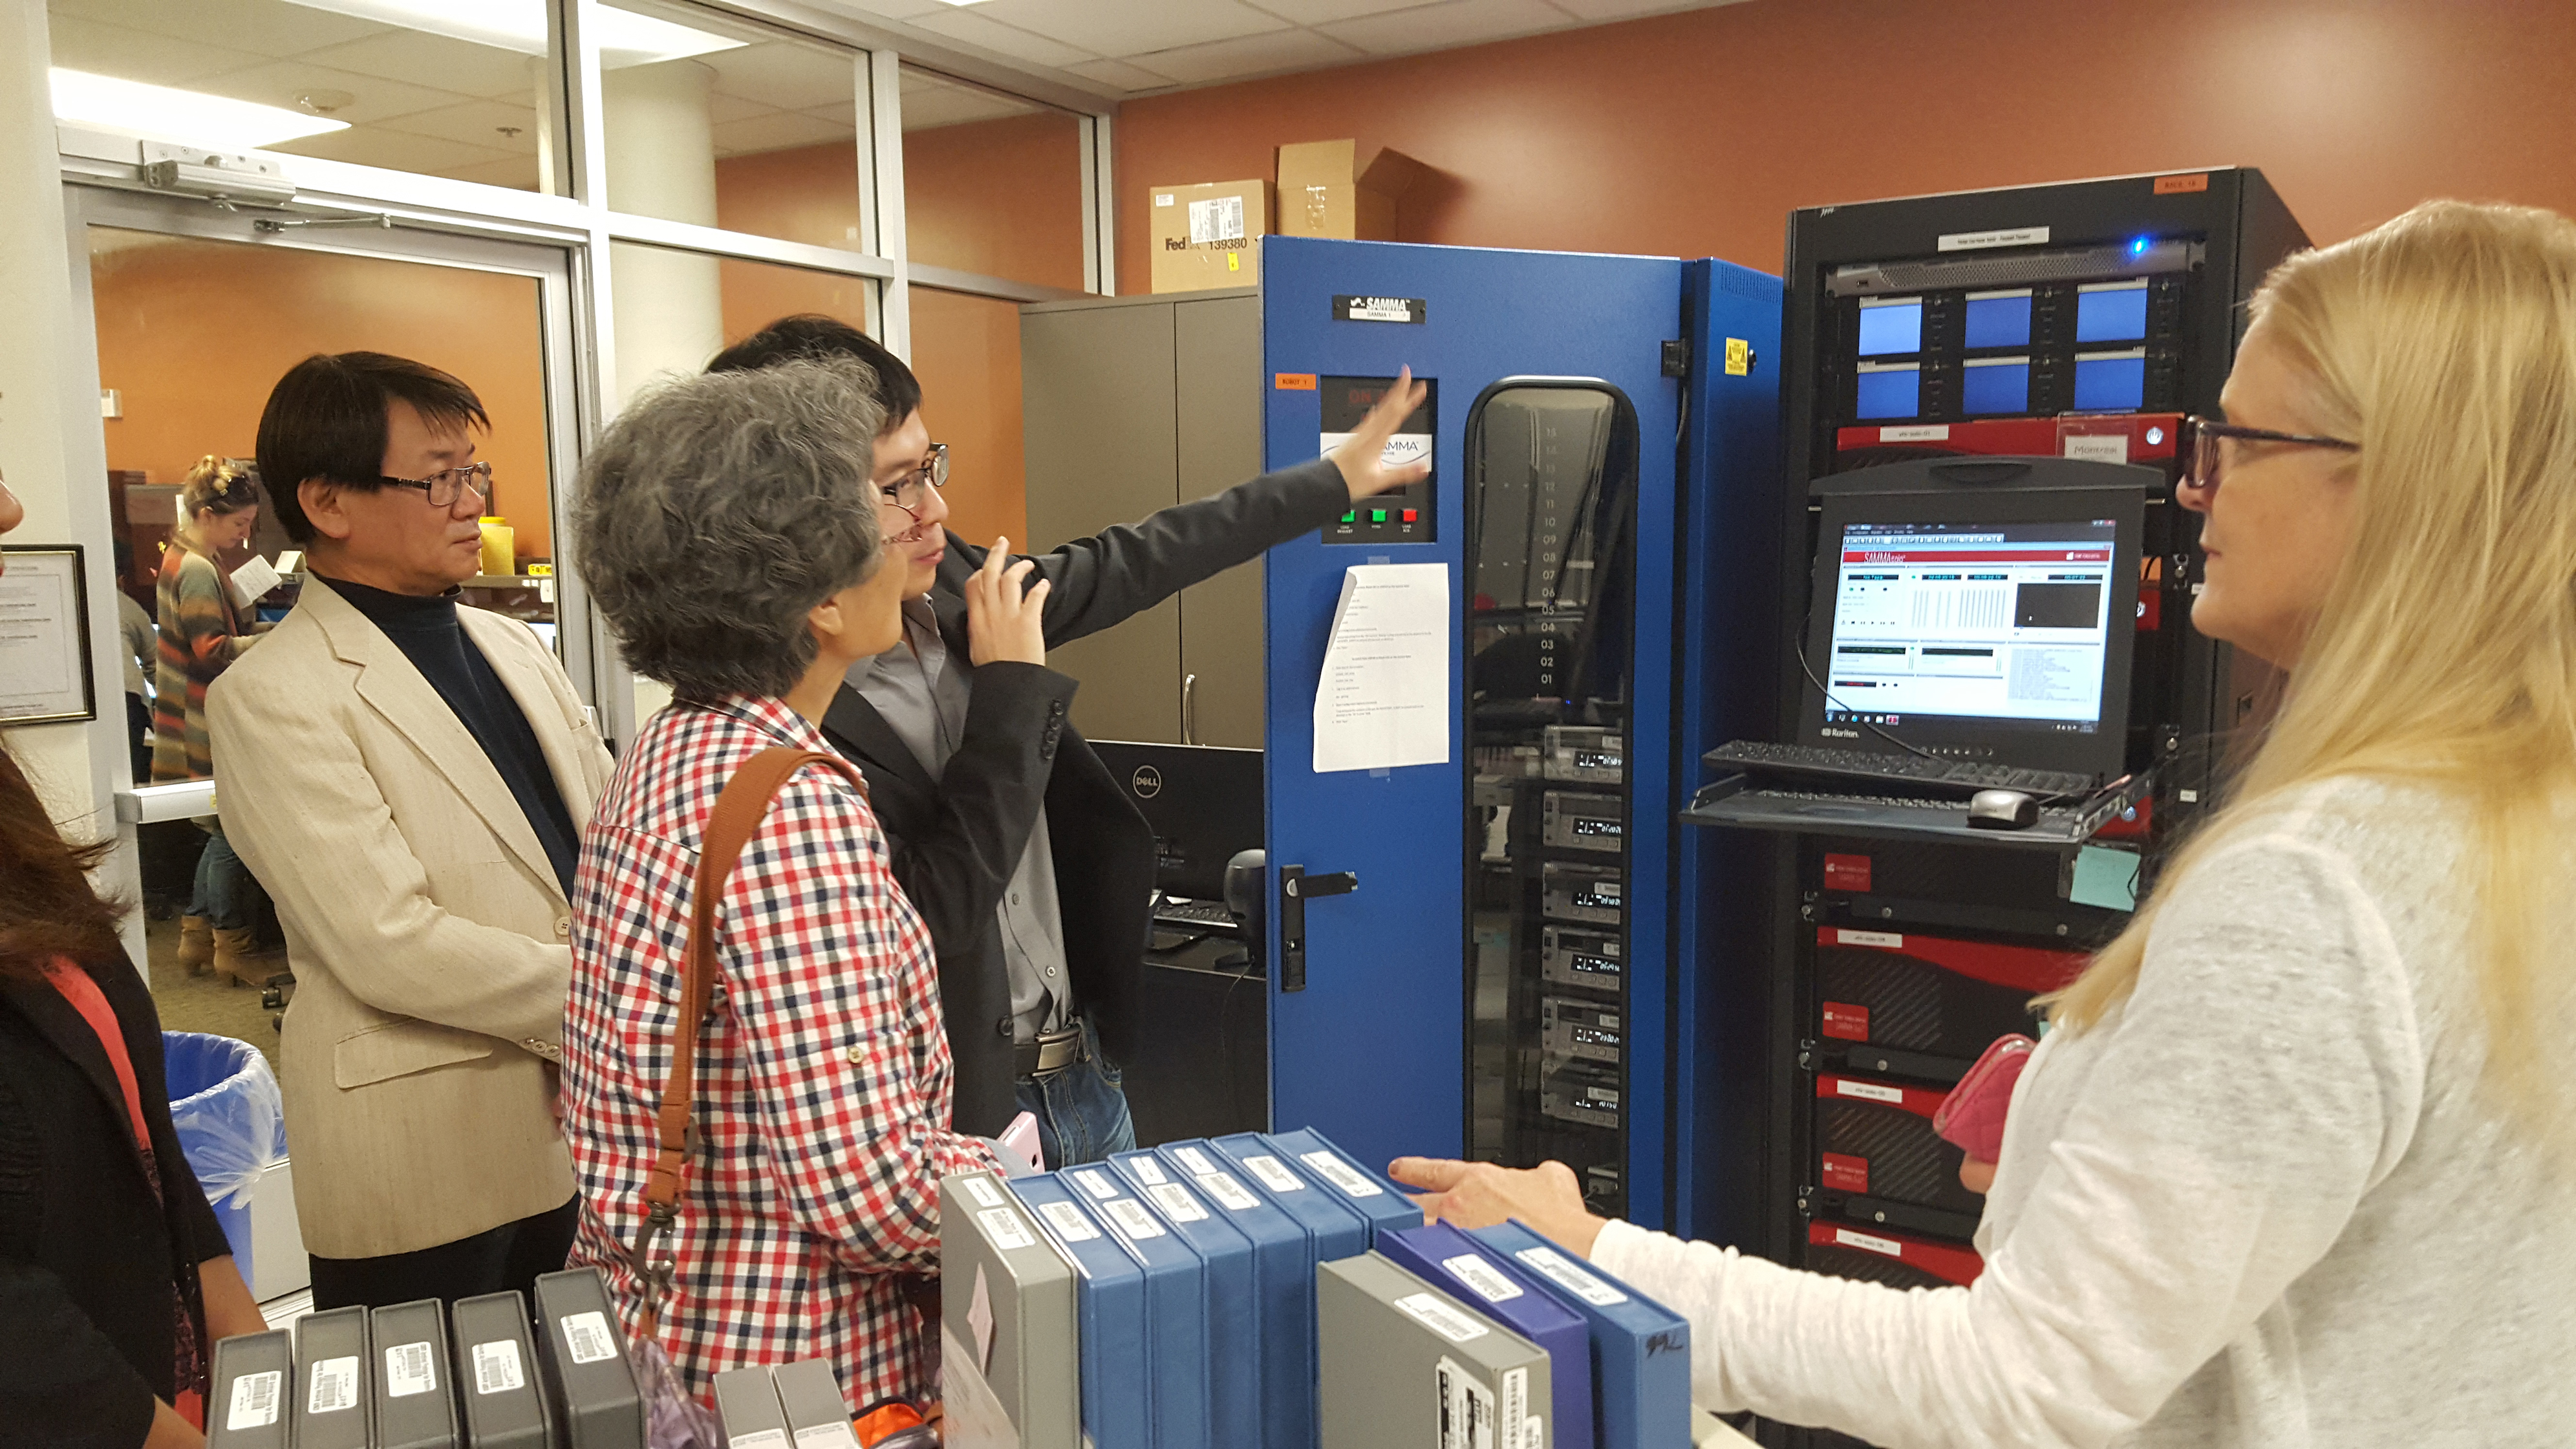 The group visits the ITS data center with Anita Pace